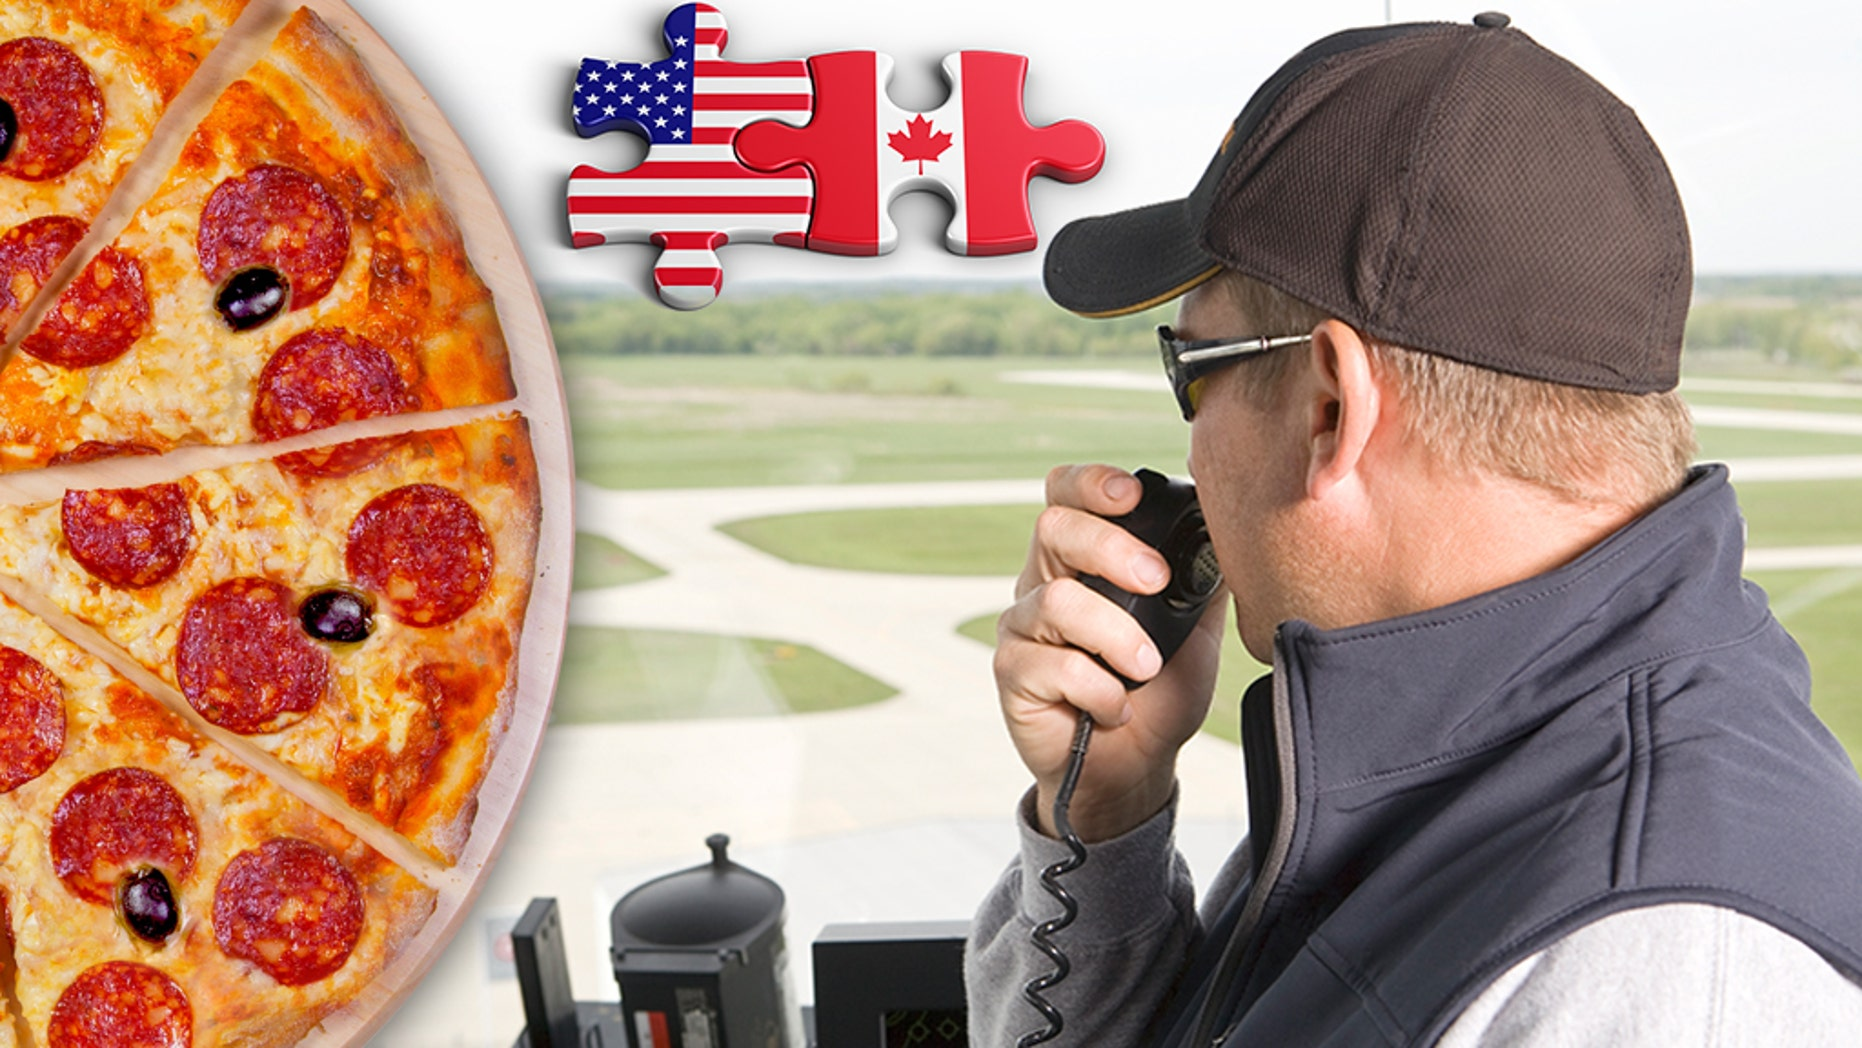 Air traffic controllers in Canada have bought air traffic controllers in the U.S. hundreds of pizza in recent days to show support for their counterparts in what is now the longest government shutdown in U.S. history.